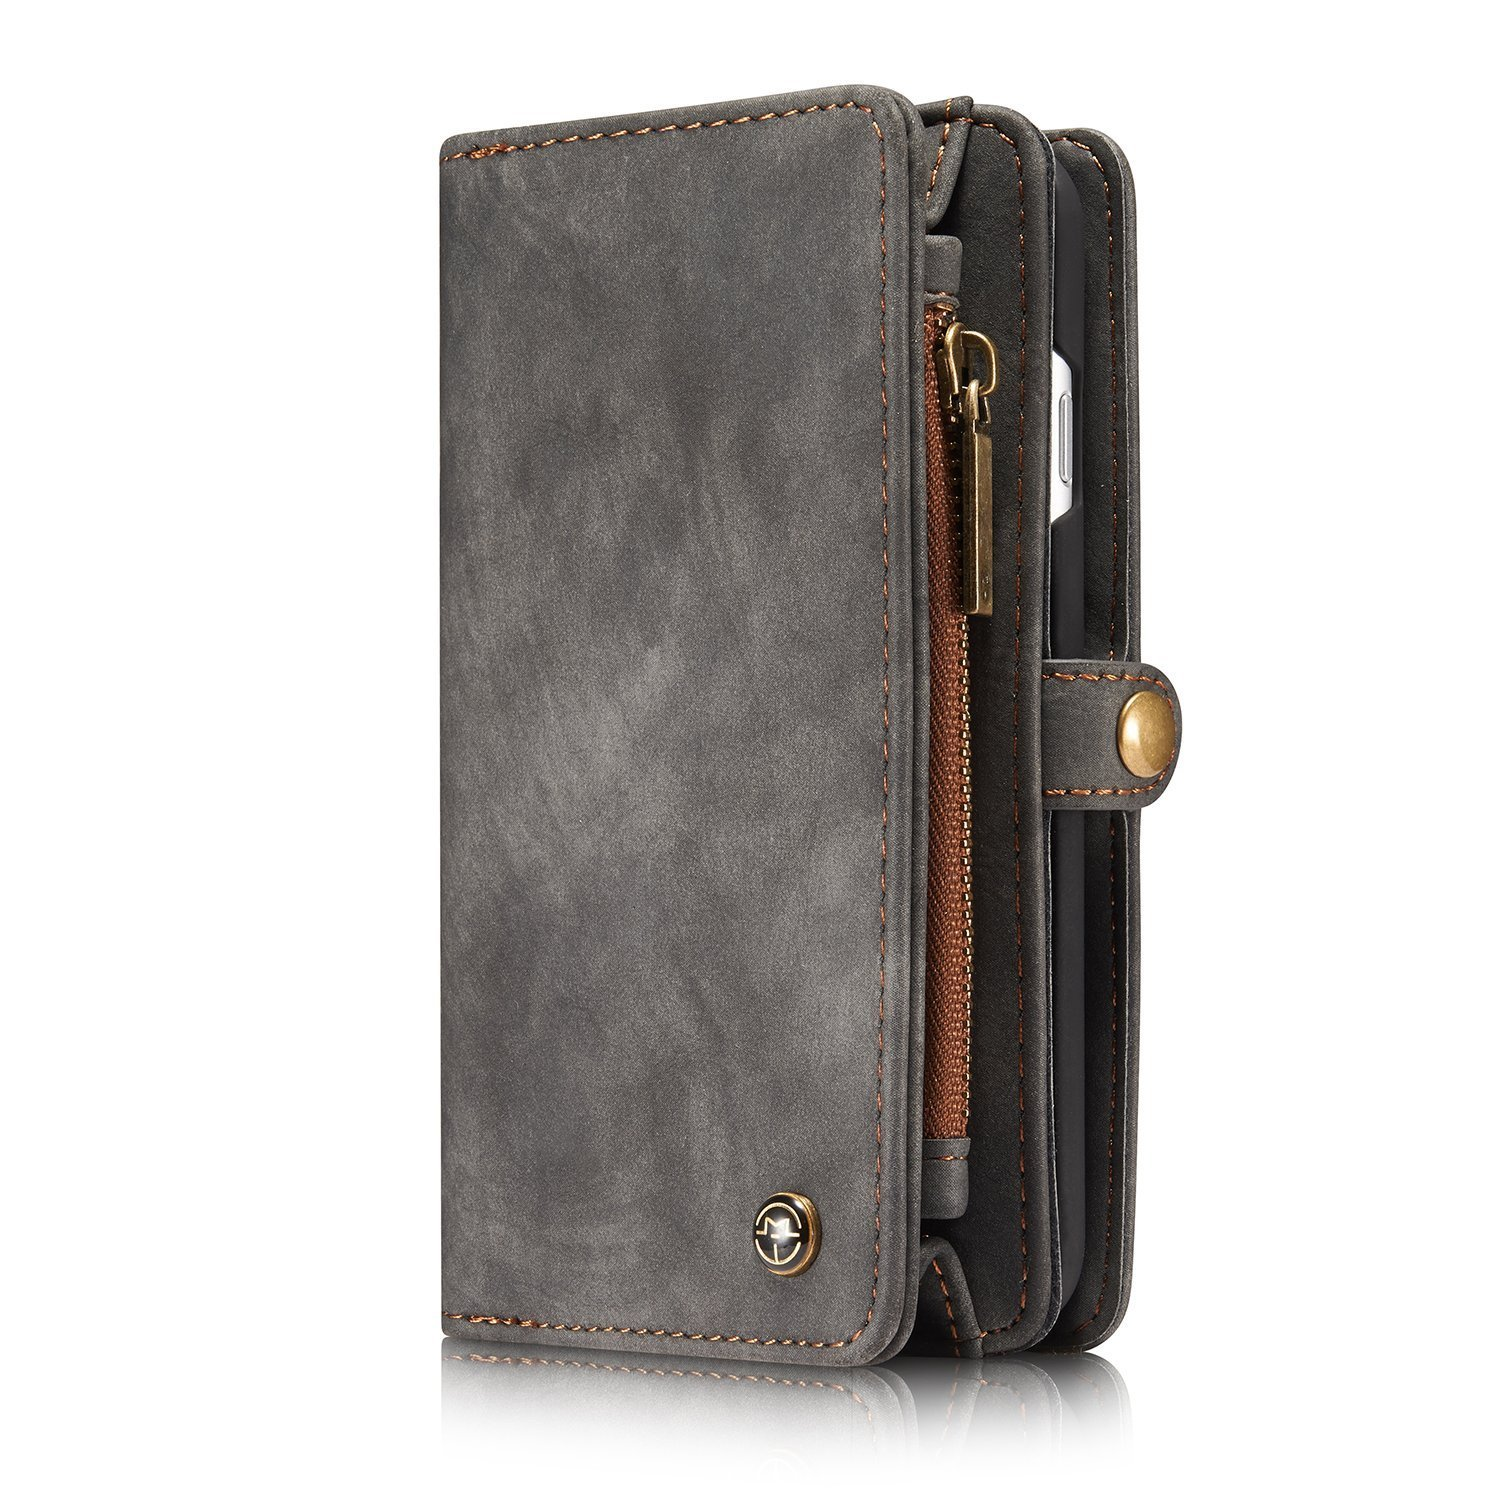 Leather Wallet Phone Case with Card Slots Wallet Cover Magnetic Removable  Case For iPhone 6 6S 6 6SPlus 7 8 7 Plus 8 Plus For Samsung S7 S7  Edge S8 S8 Plus 3d9521187498